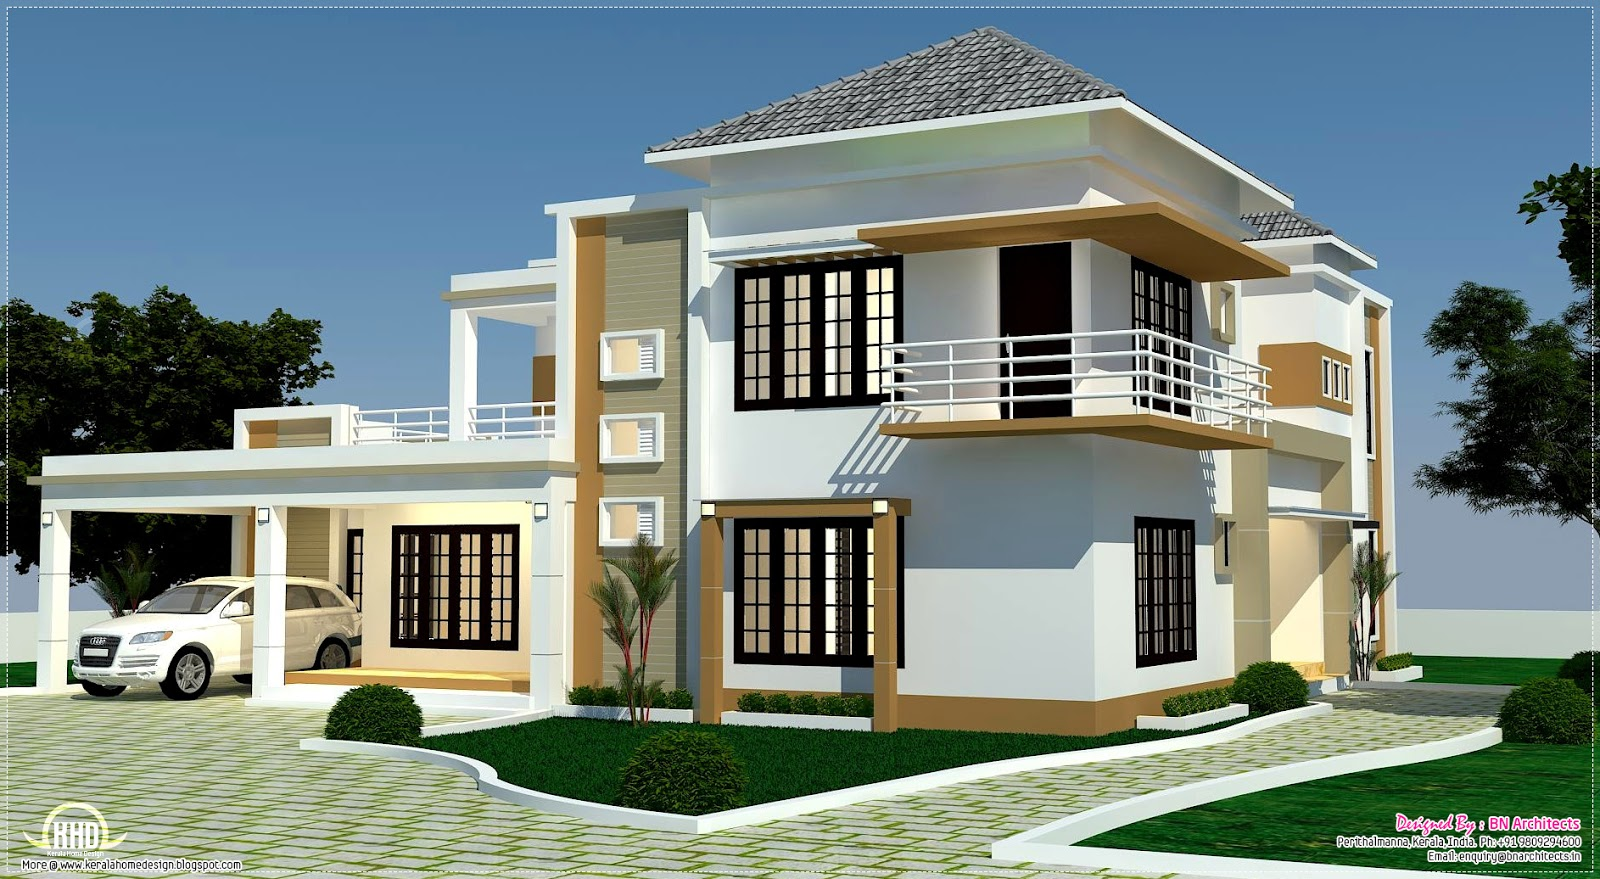 Floor plan 3d views and interiors of 4 bedroom villa 3d view home design